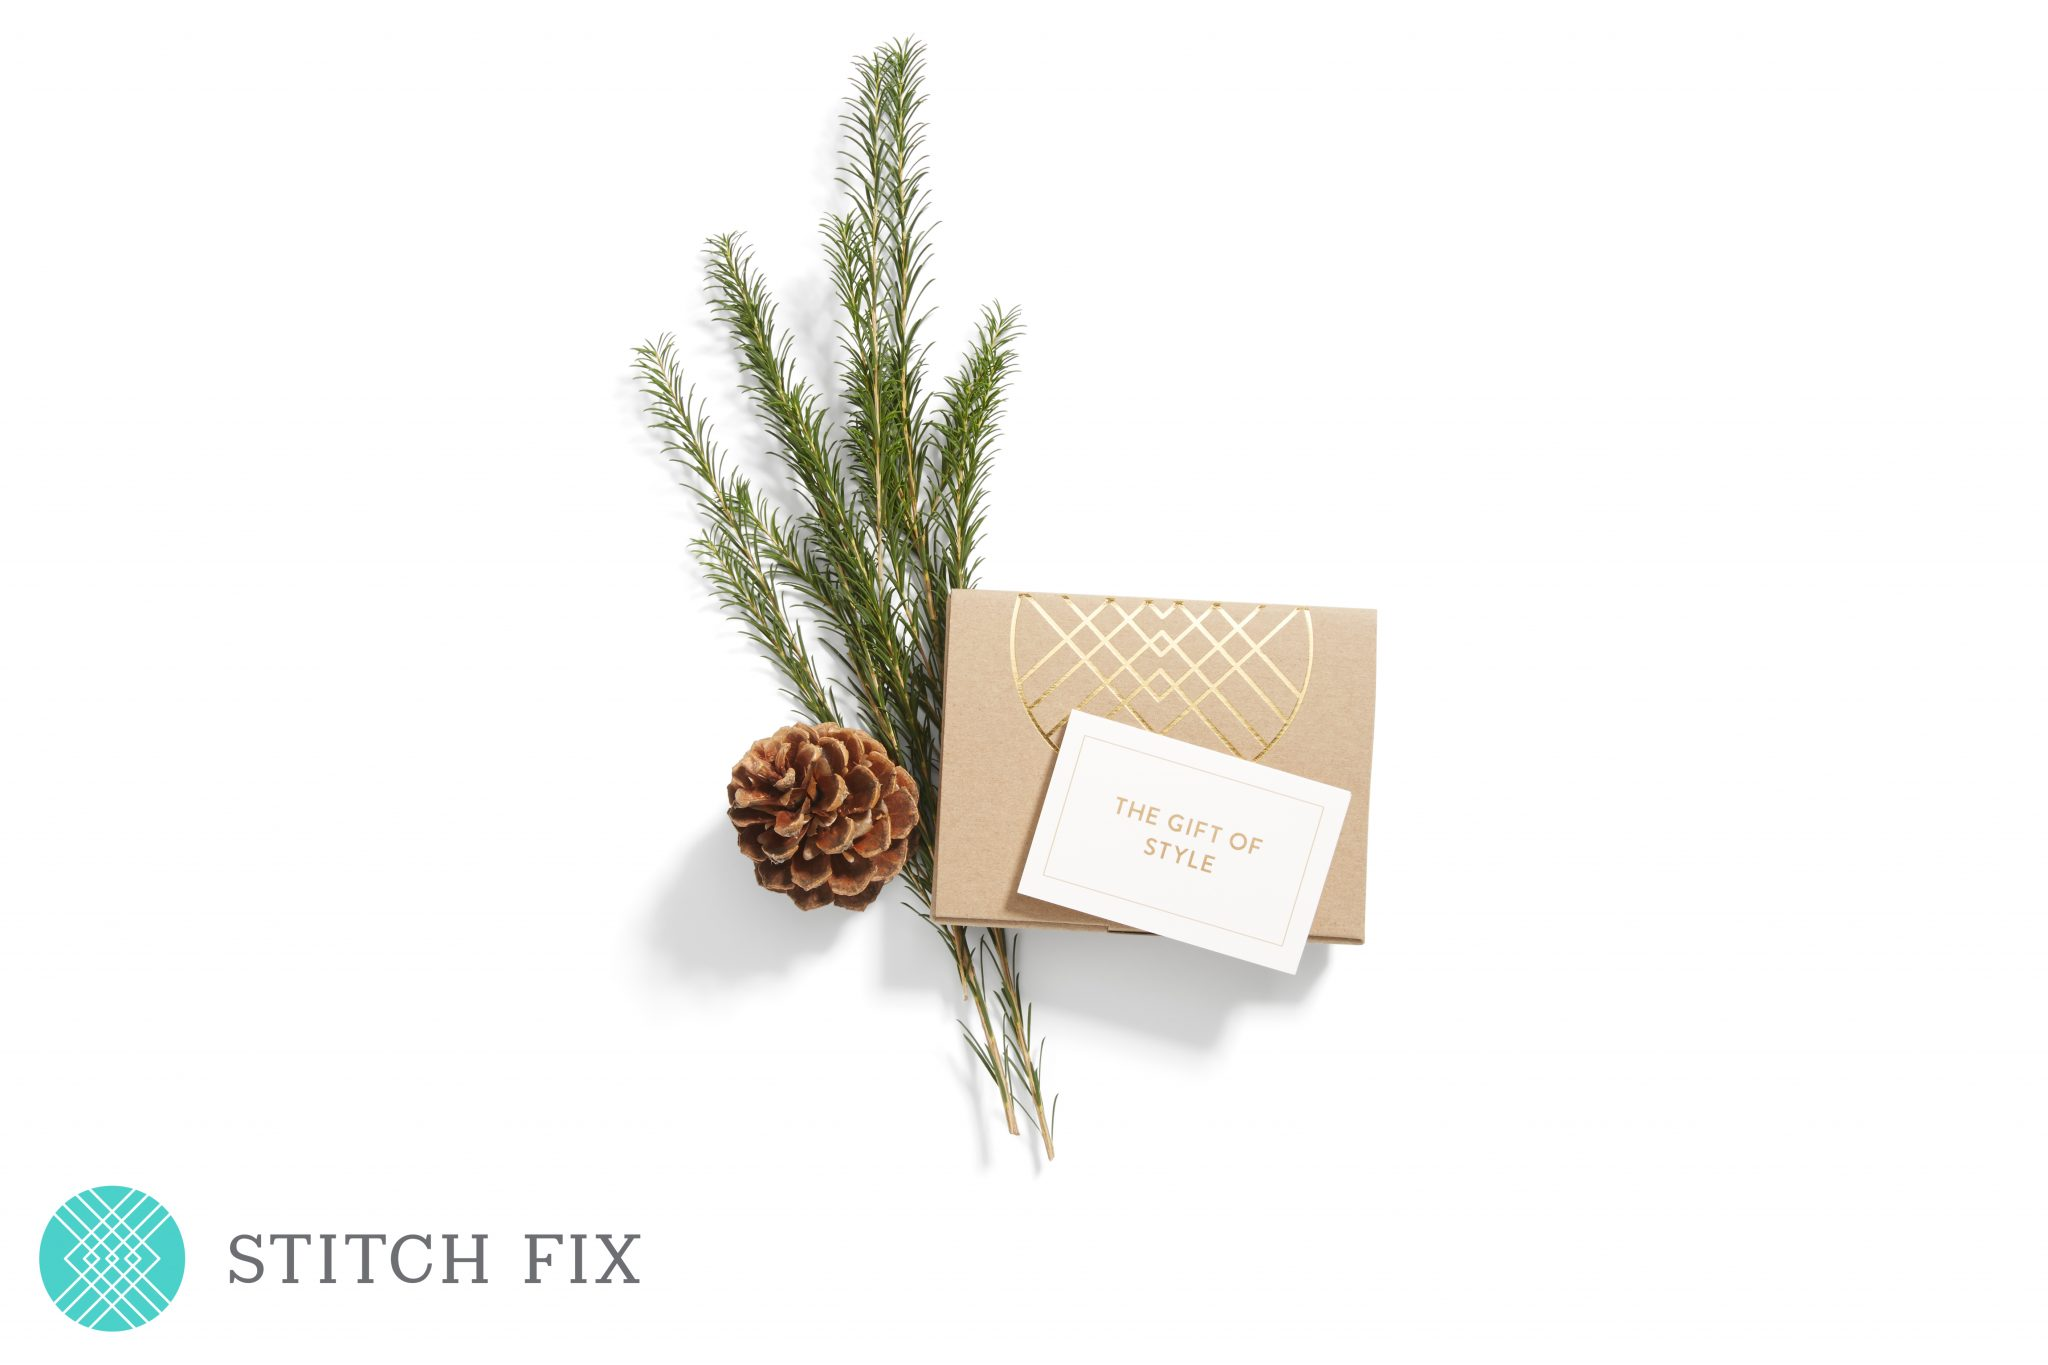 stitch-fix-gift-card-holiday-gift-guide7